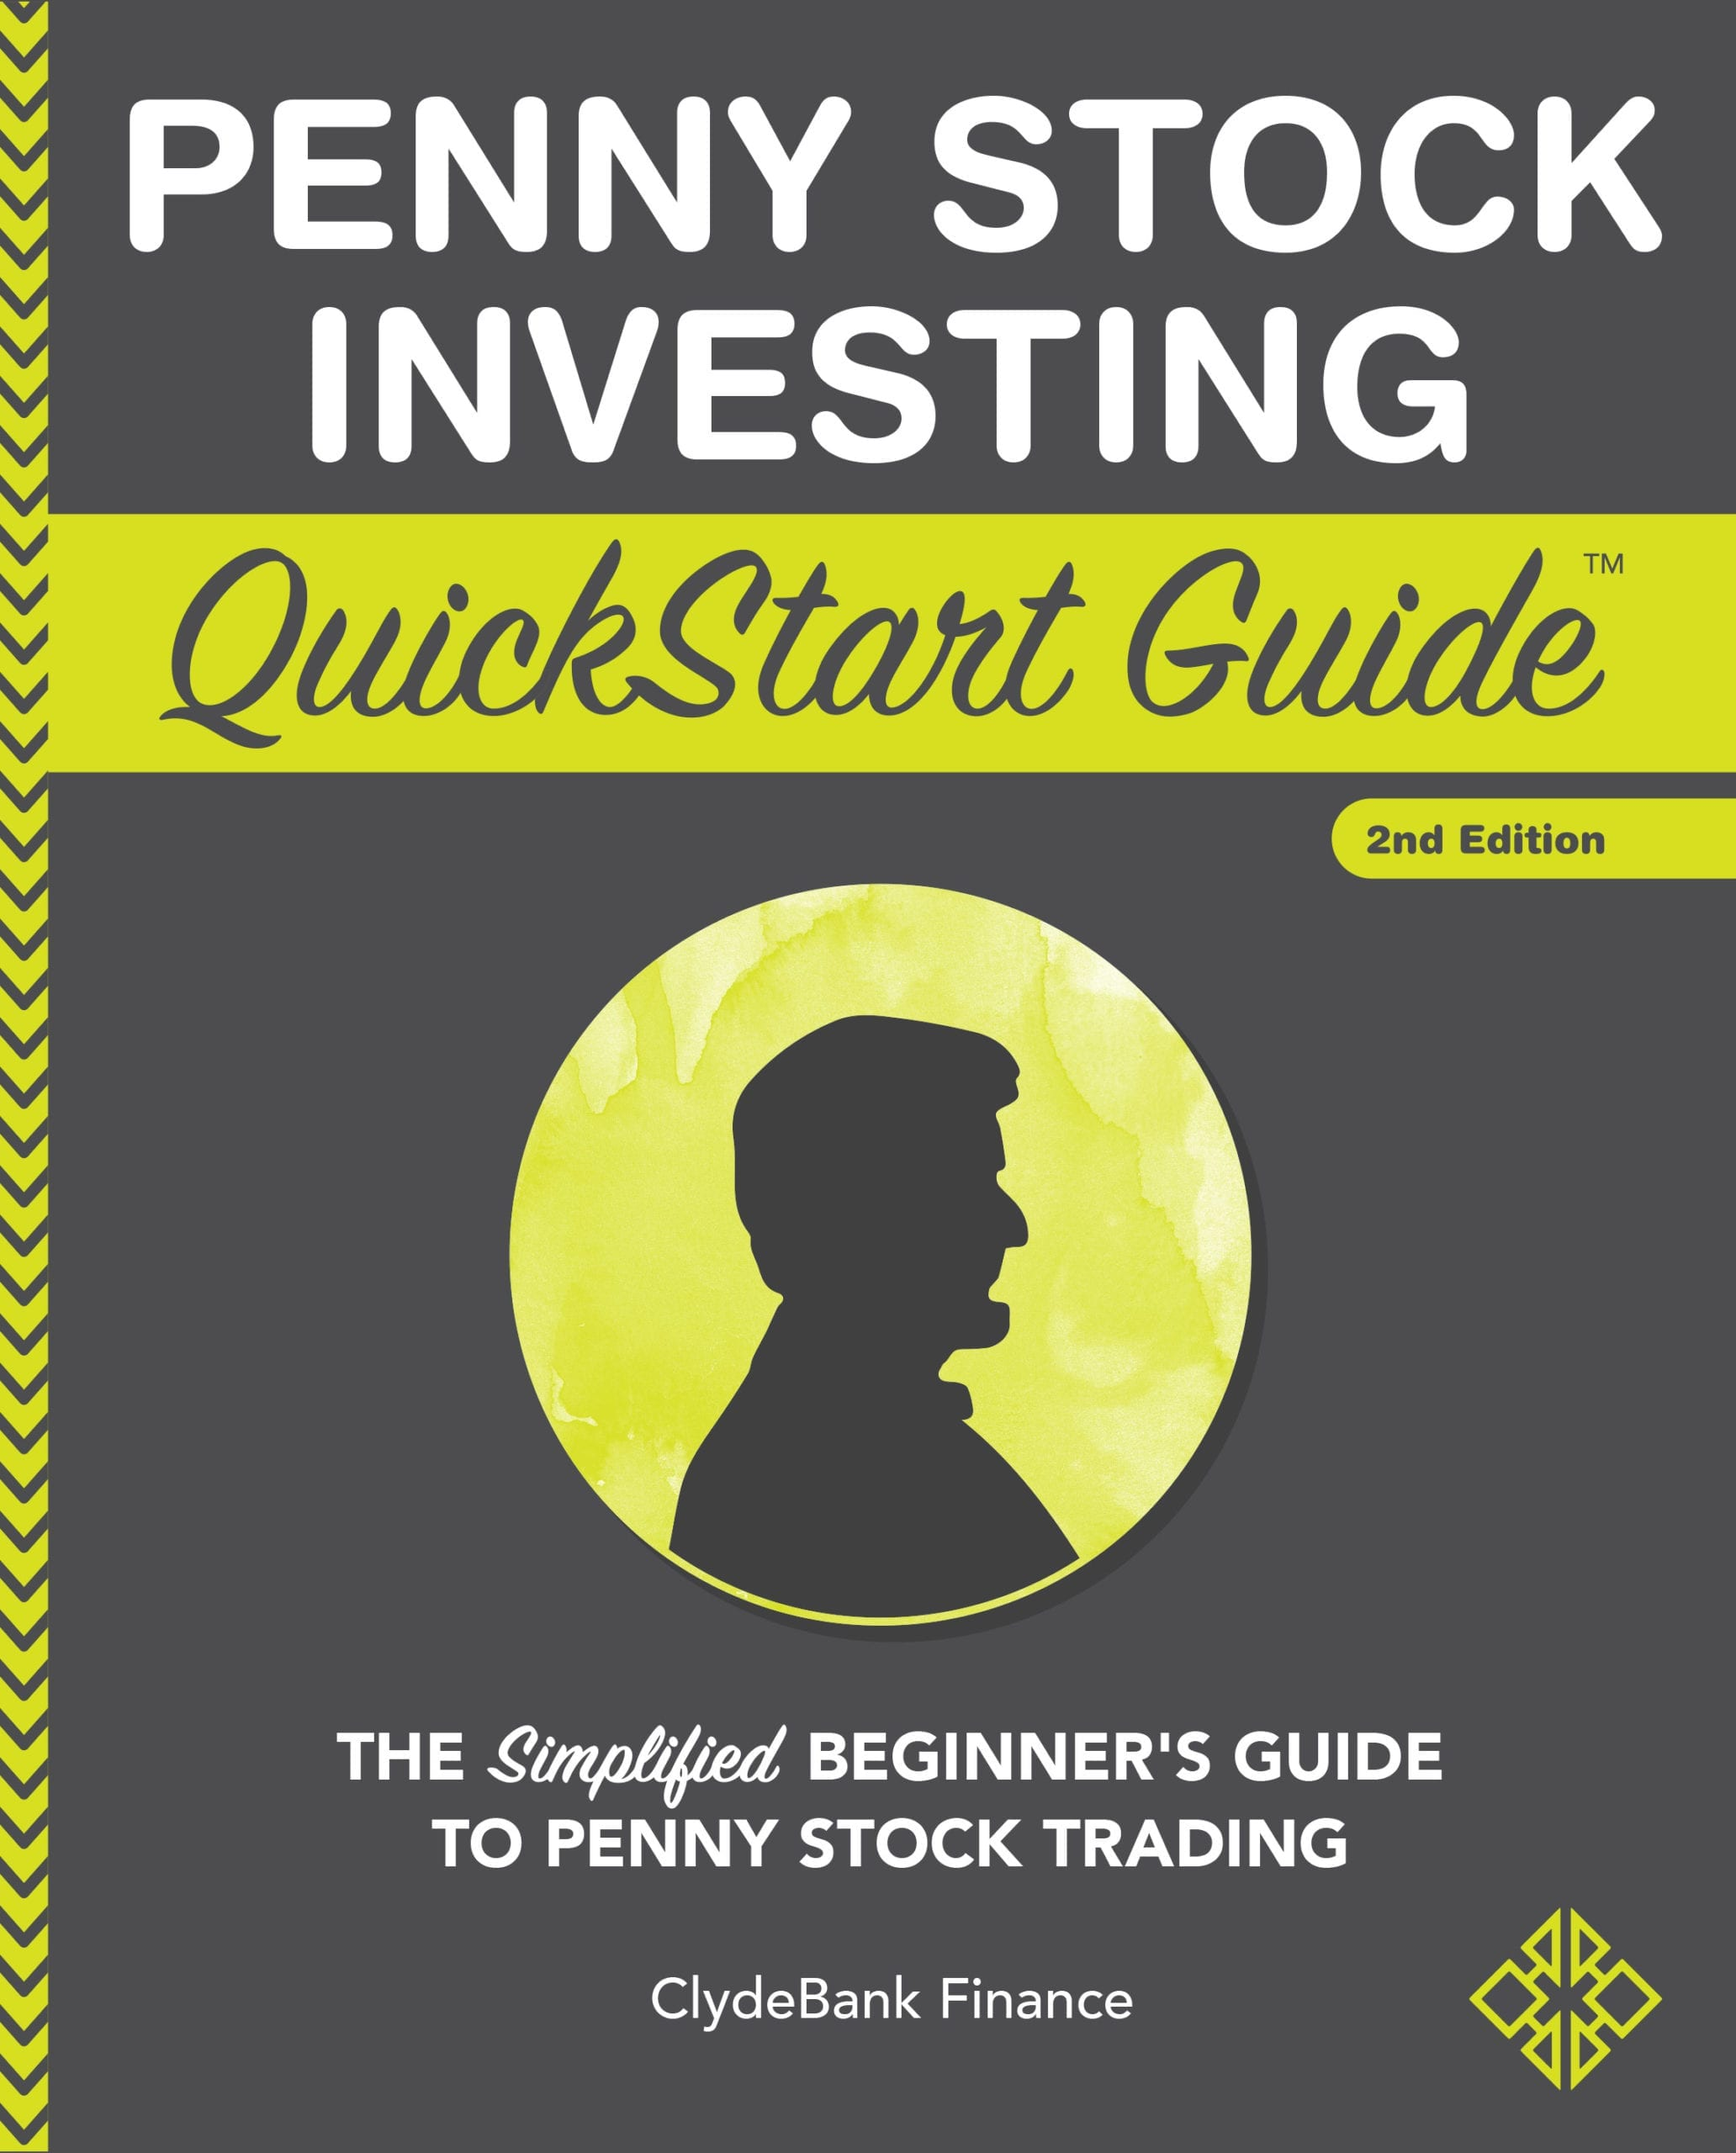 Penny Stock Investing QuickStart Guide Cover